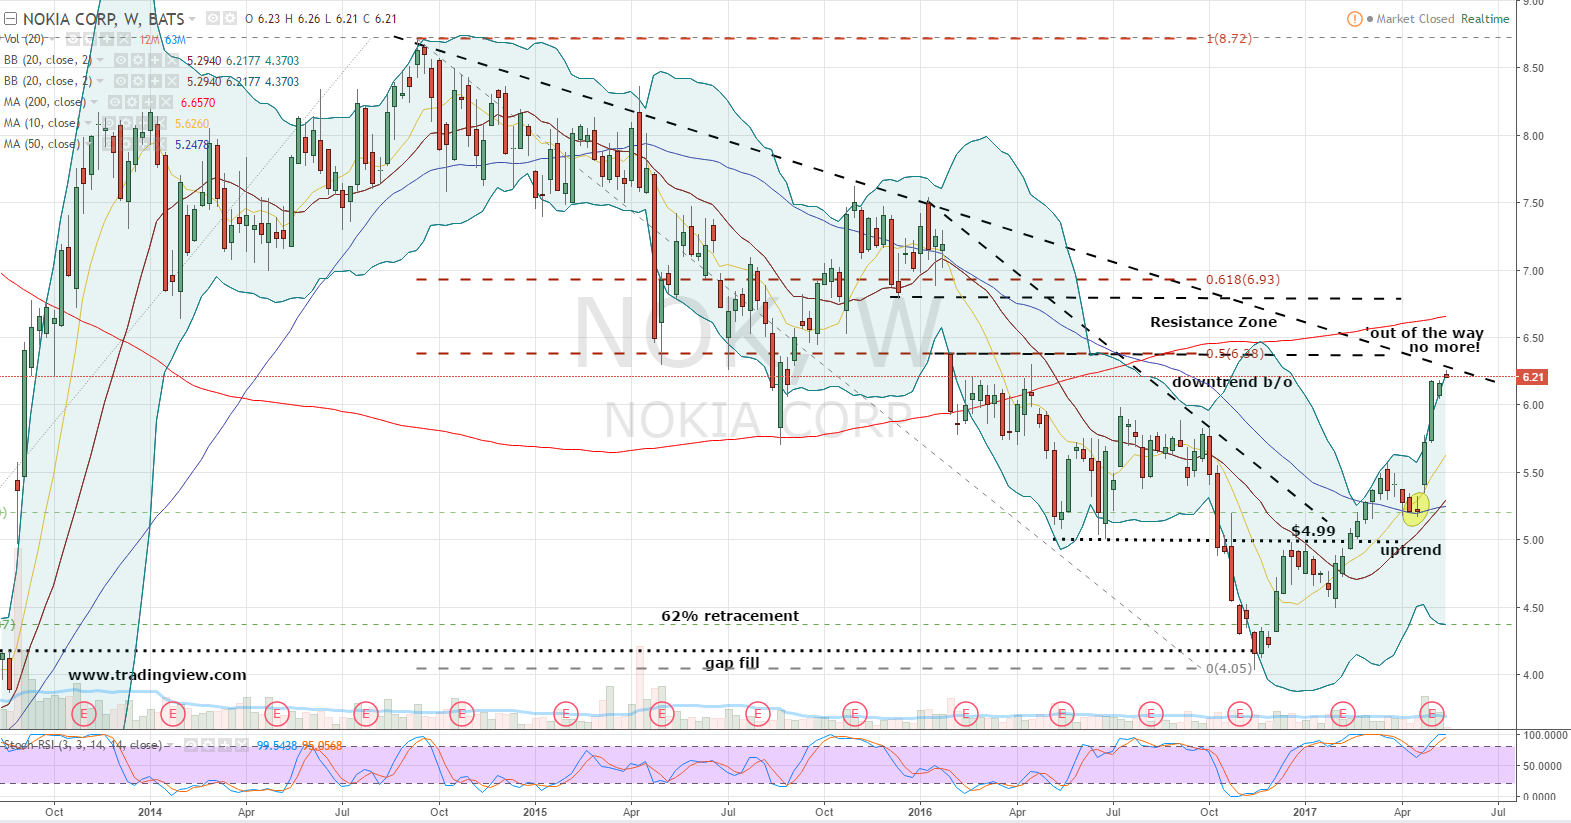 Should You Buy Nokia Corporation (NYSE:NOK) On Current Analyst Views?